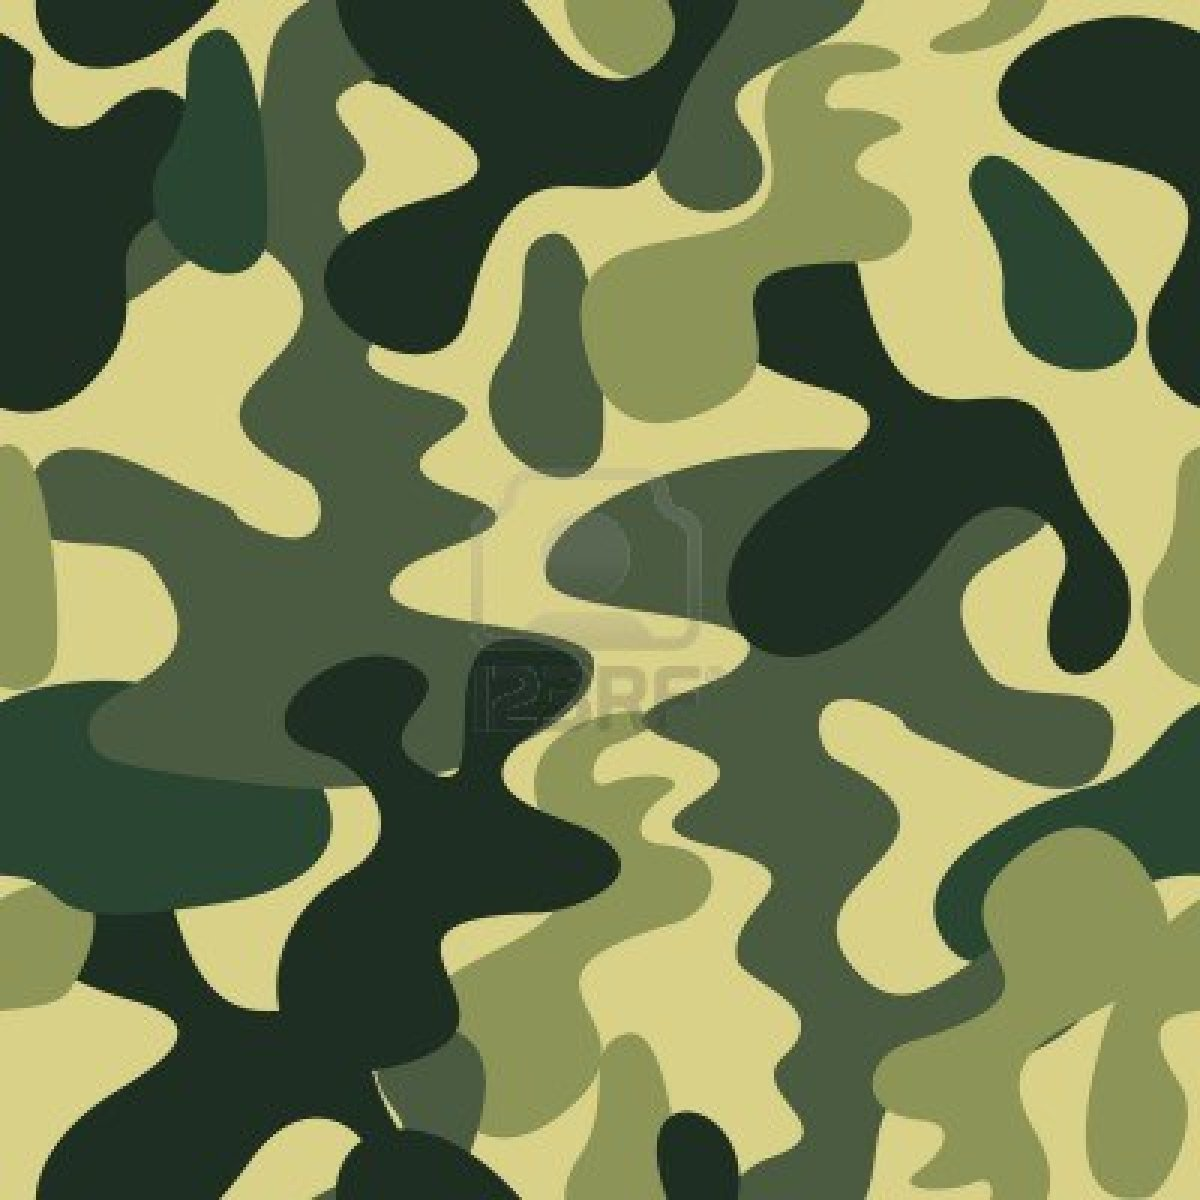 Clip Art Camo Clip Art Camo Baby Clip Art Clip Art Camouflage Pattern